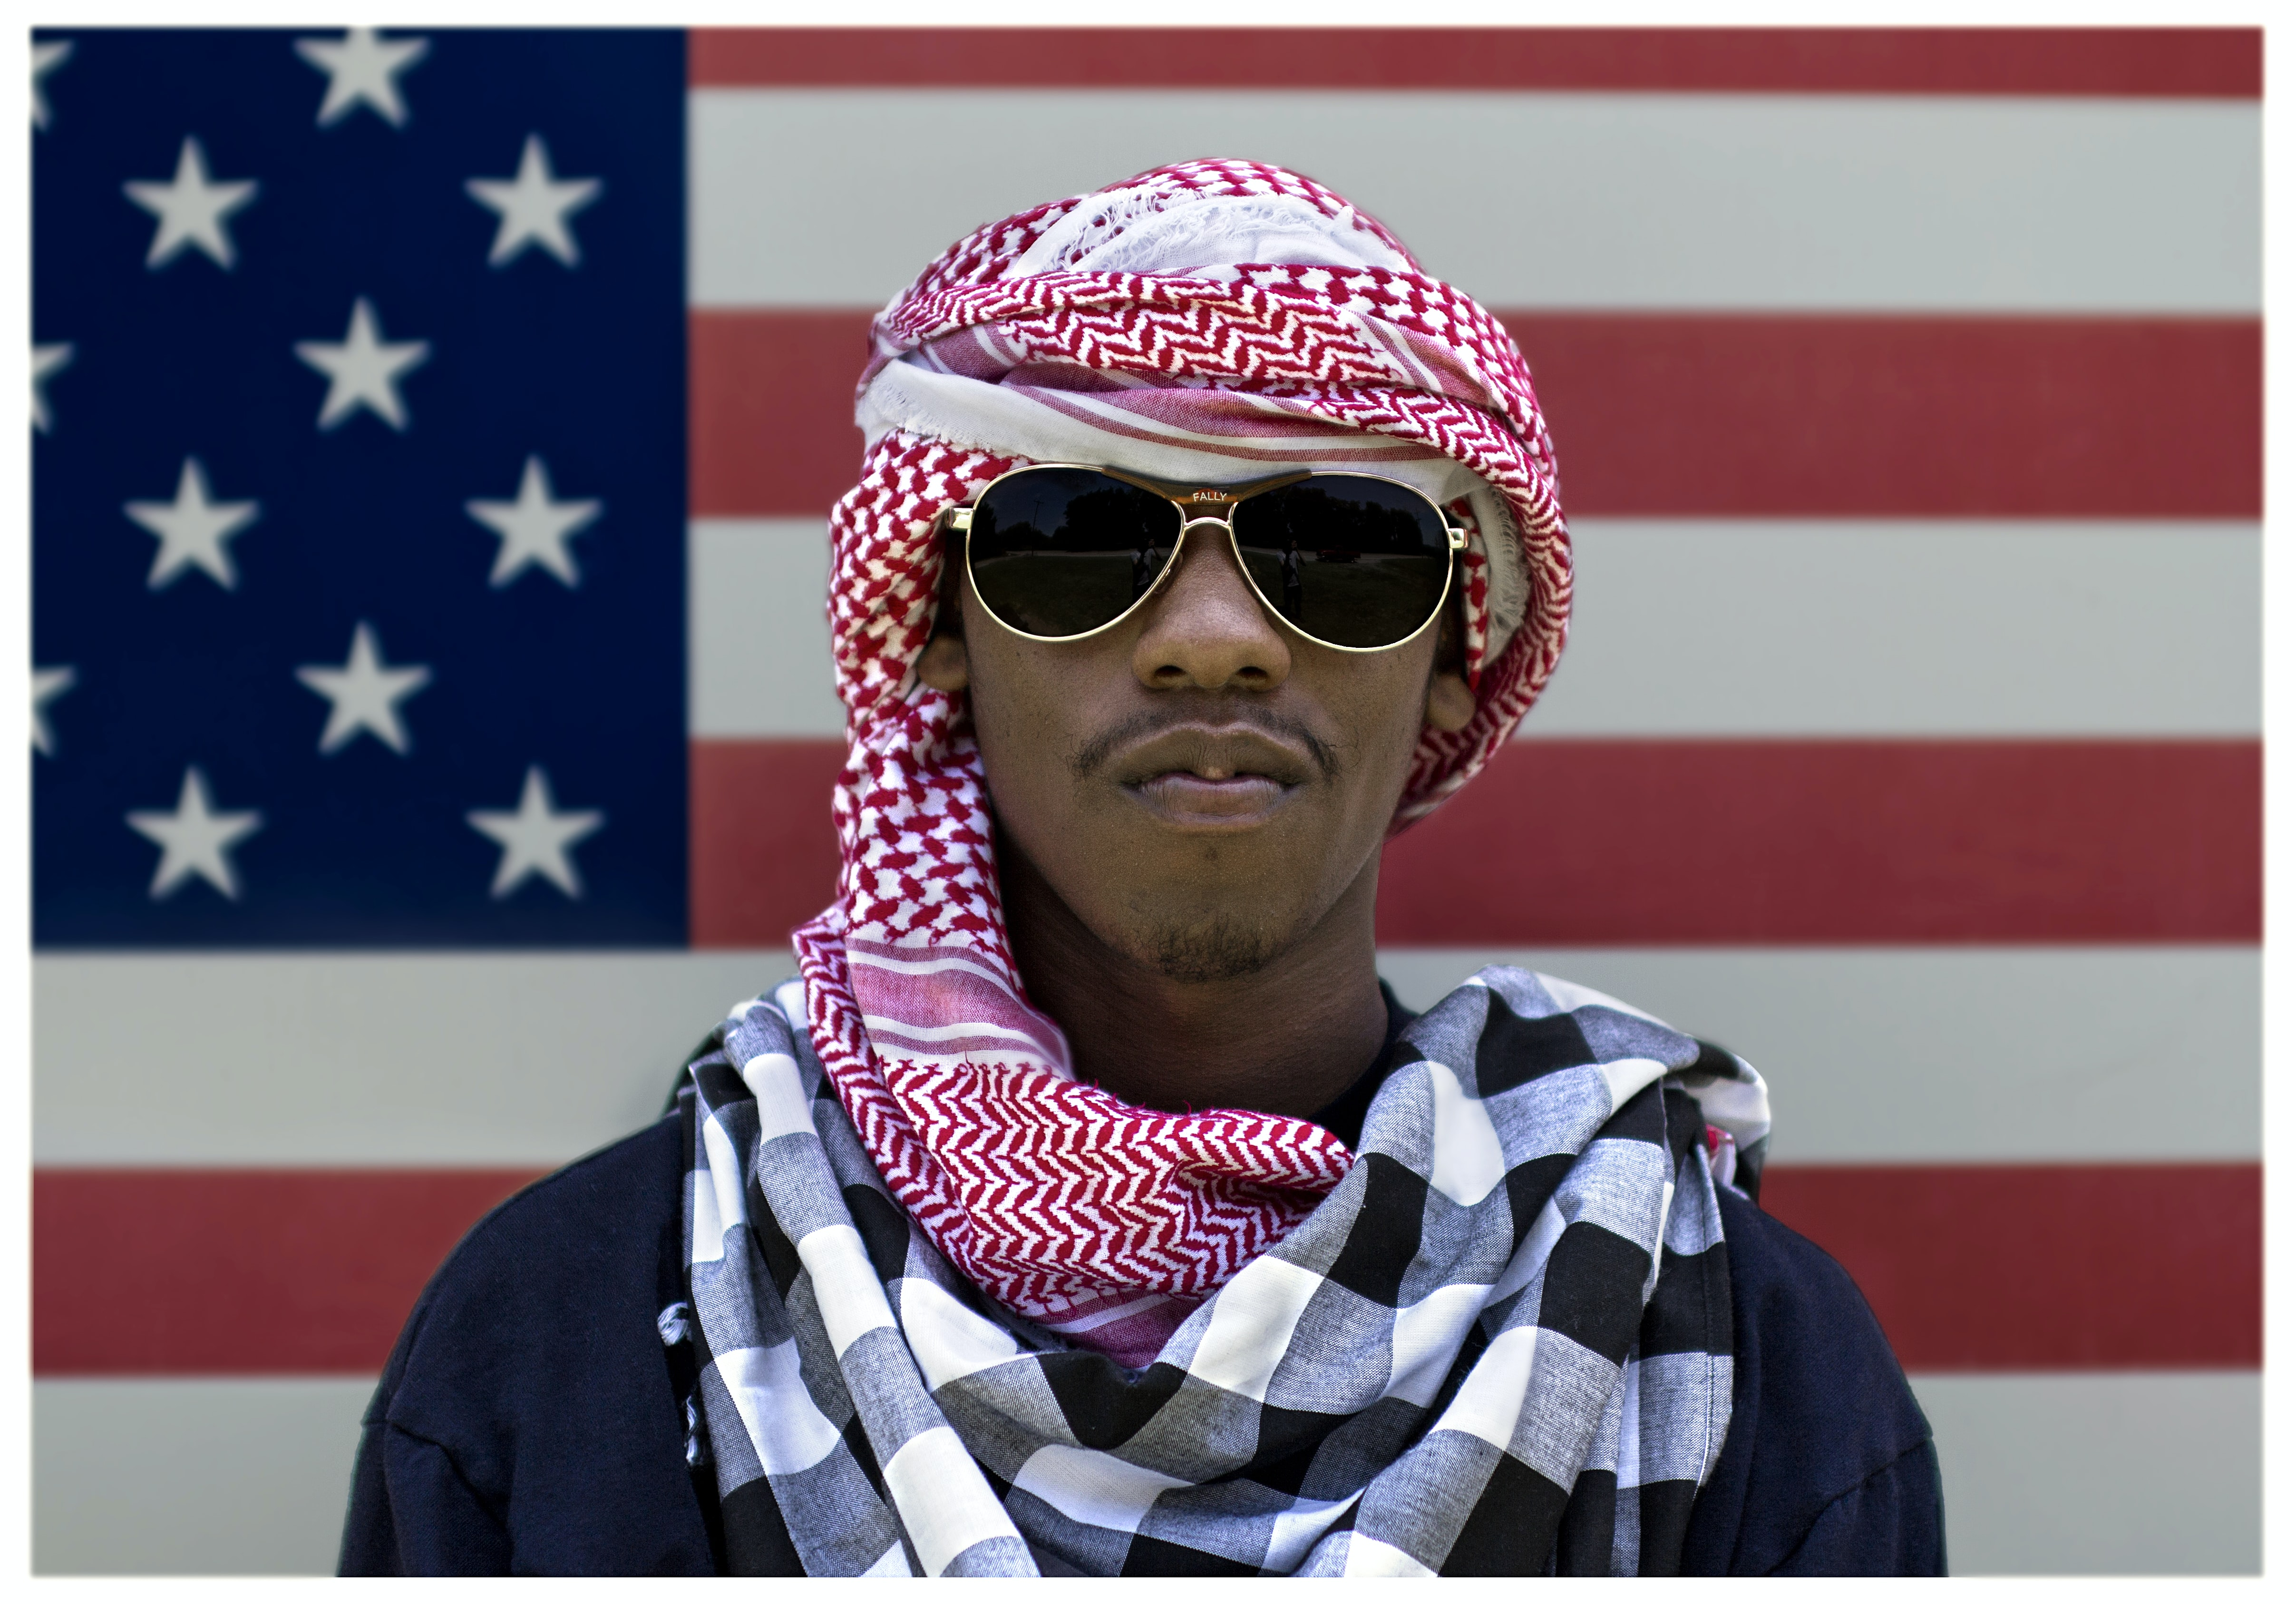 man wearing sunglasses in front of American flag